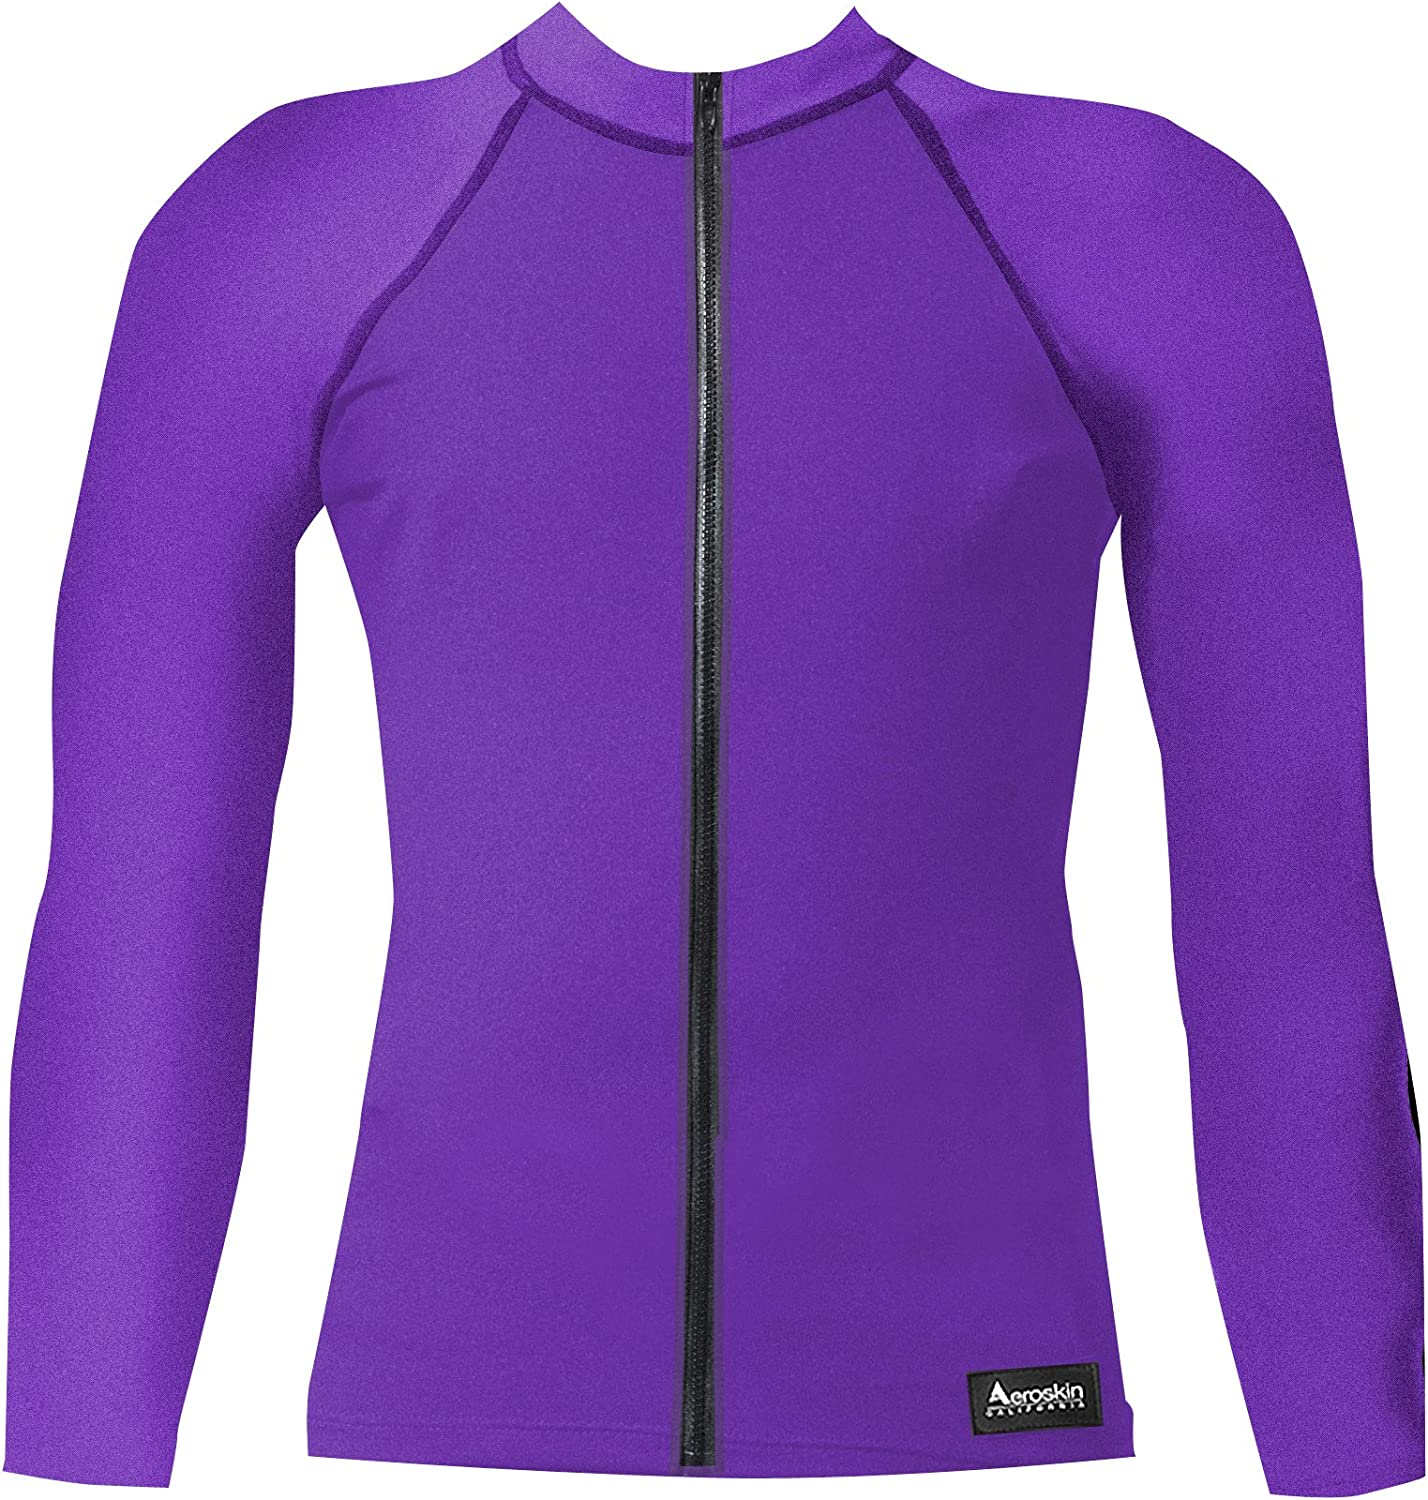 Aeroskin Nylon Long Sleeve Rash Guard with Front Zip, Solid colors (Purple, XLarge)